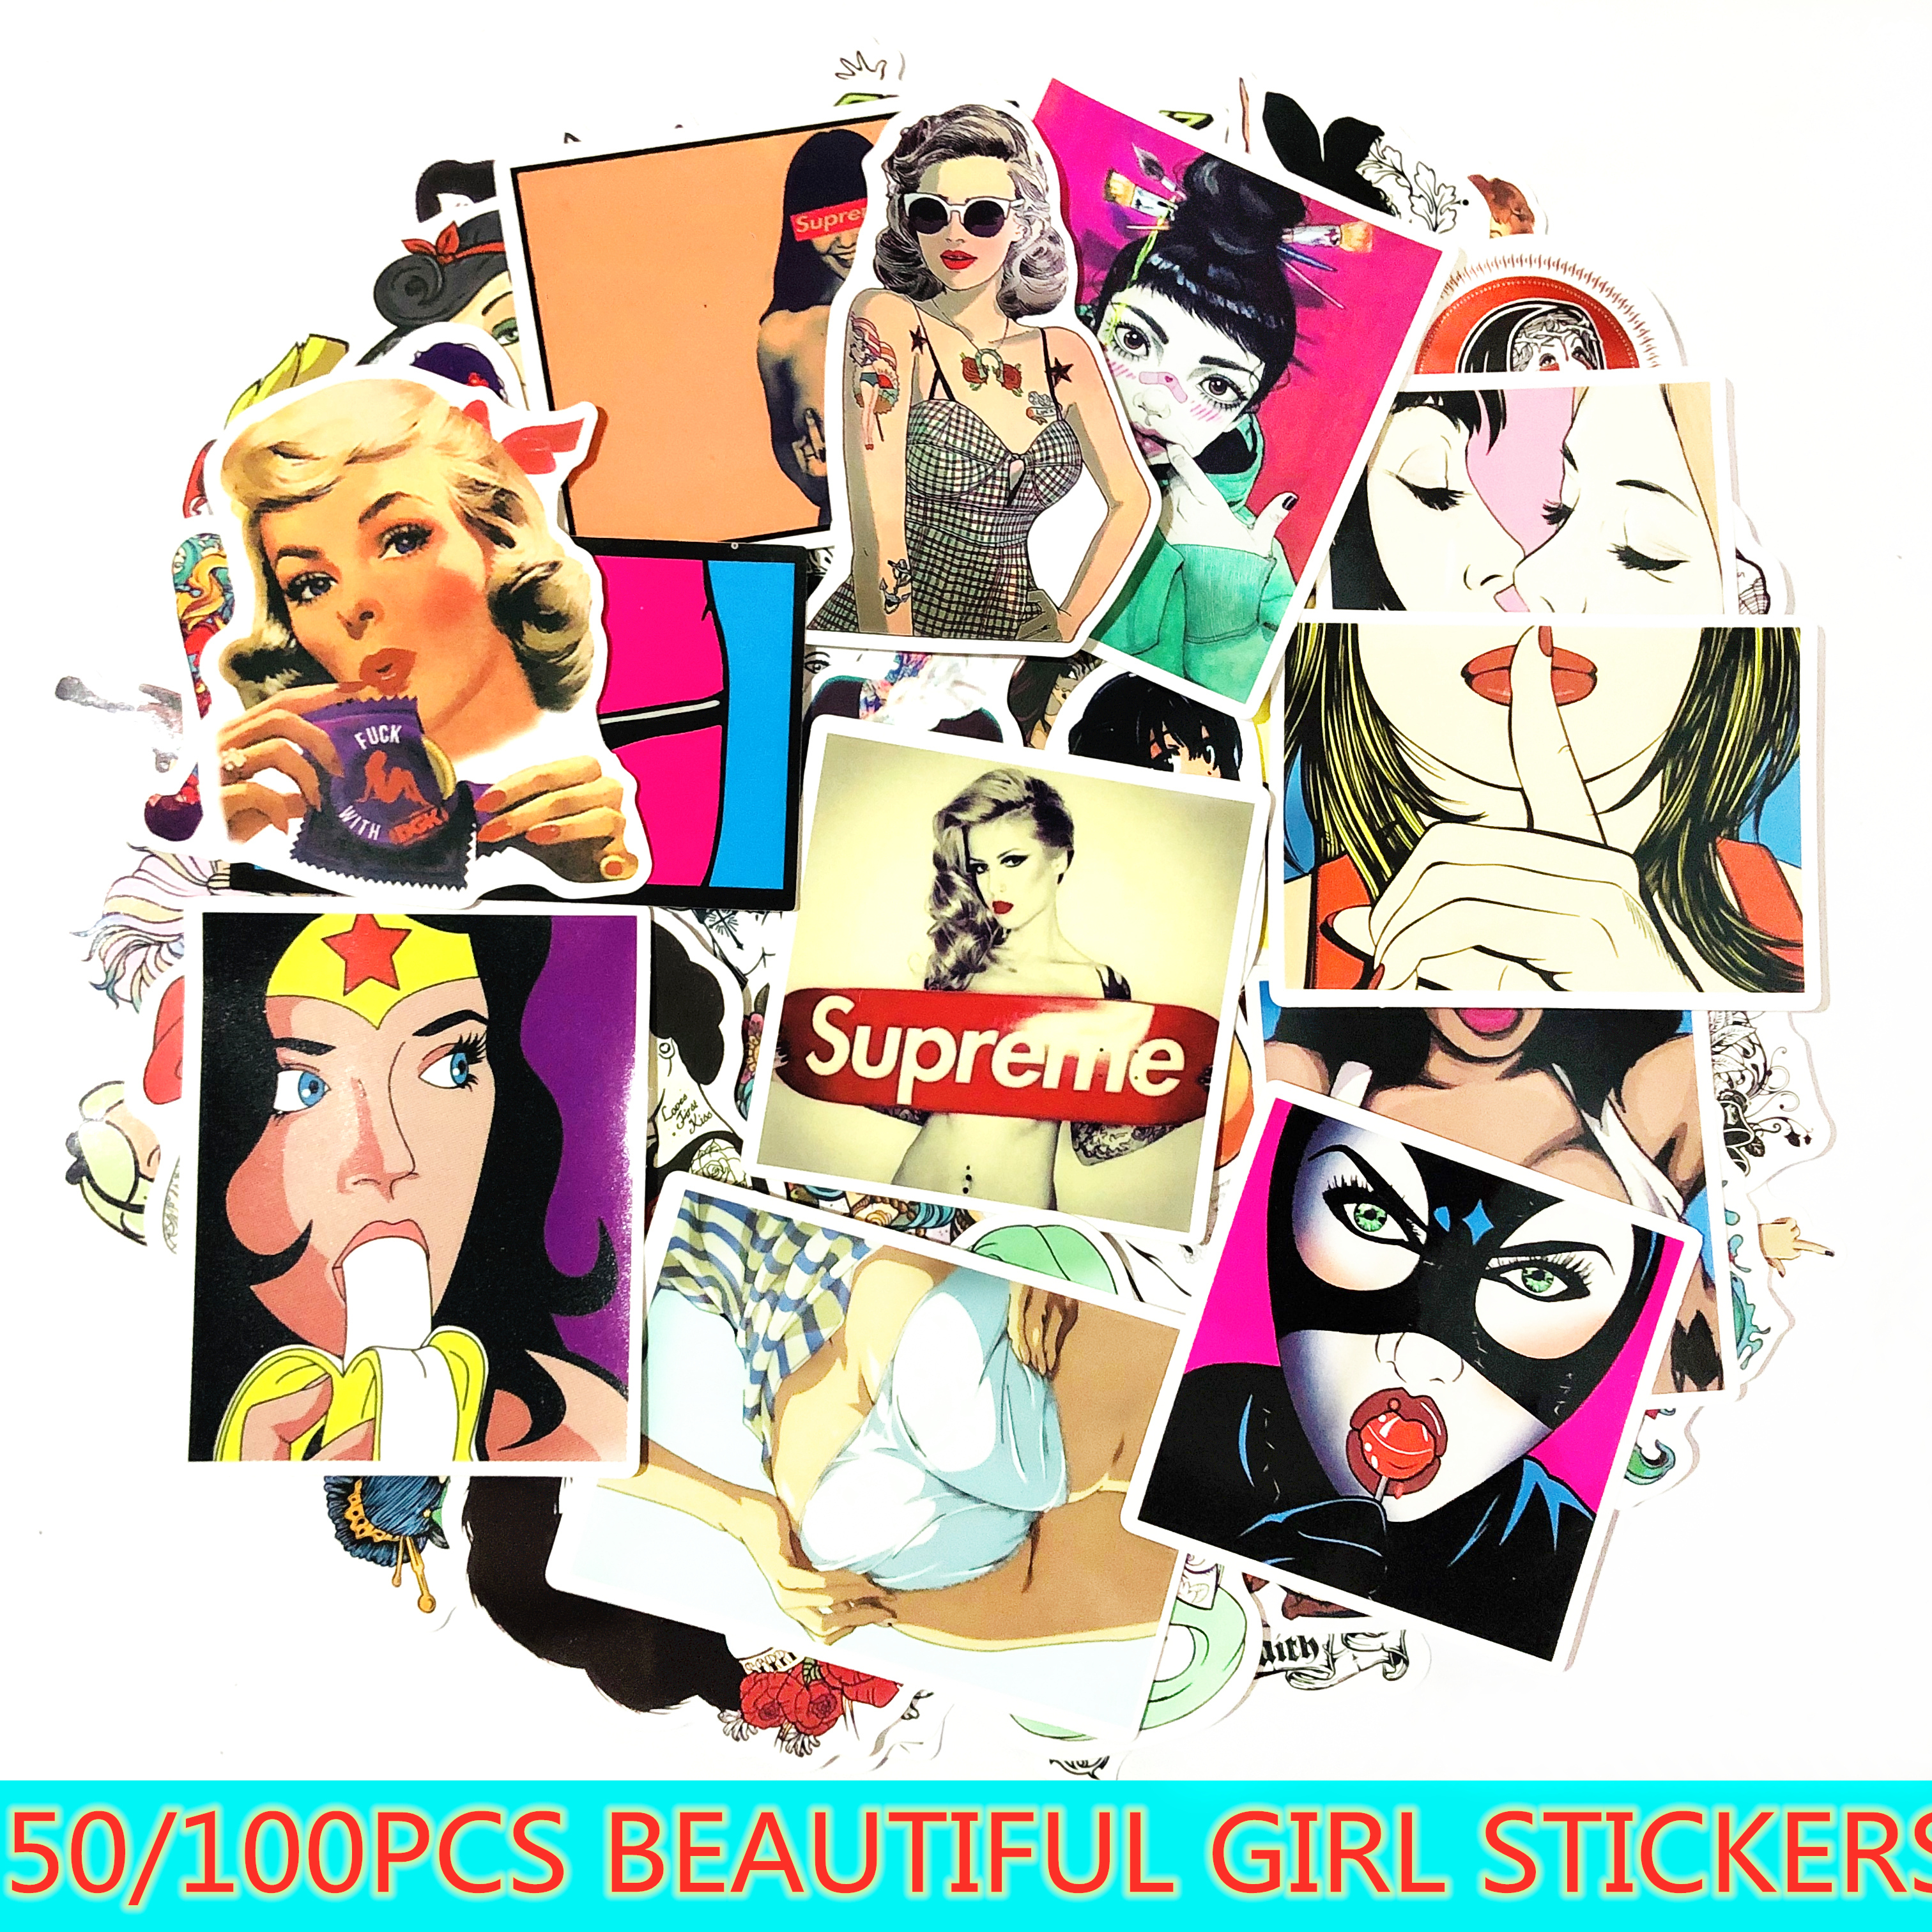 50/100 Pcs Cartoon doodling Pvc Waterproof Sexy Beauty Girls Stickers For Laptop Skateboard Luggage Decal Office Toy Appliances-in Stickers from Toys & Hobbies